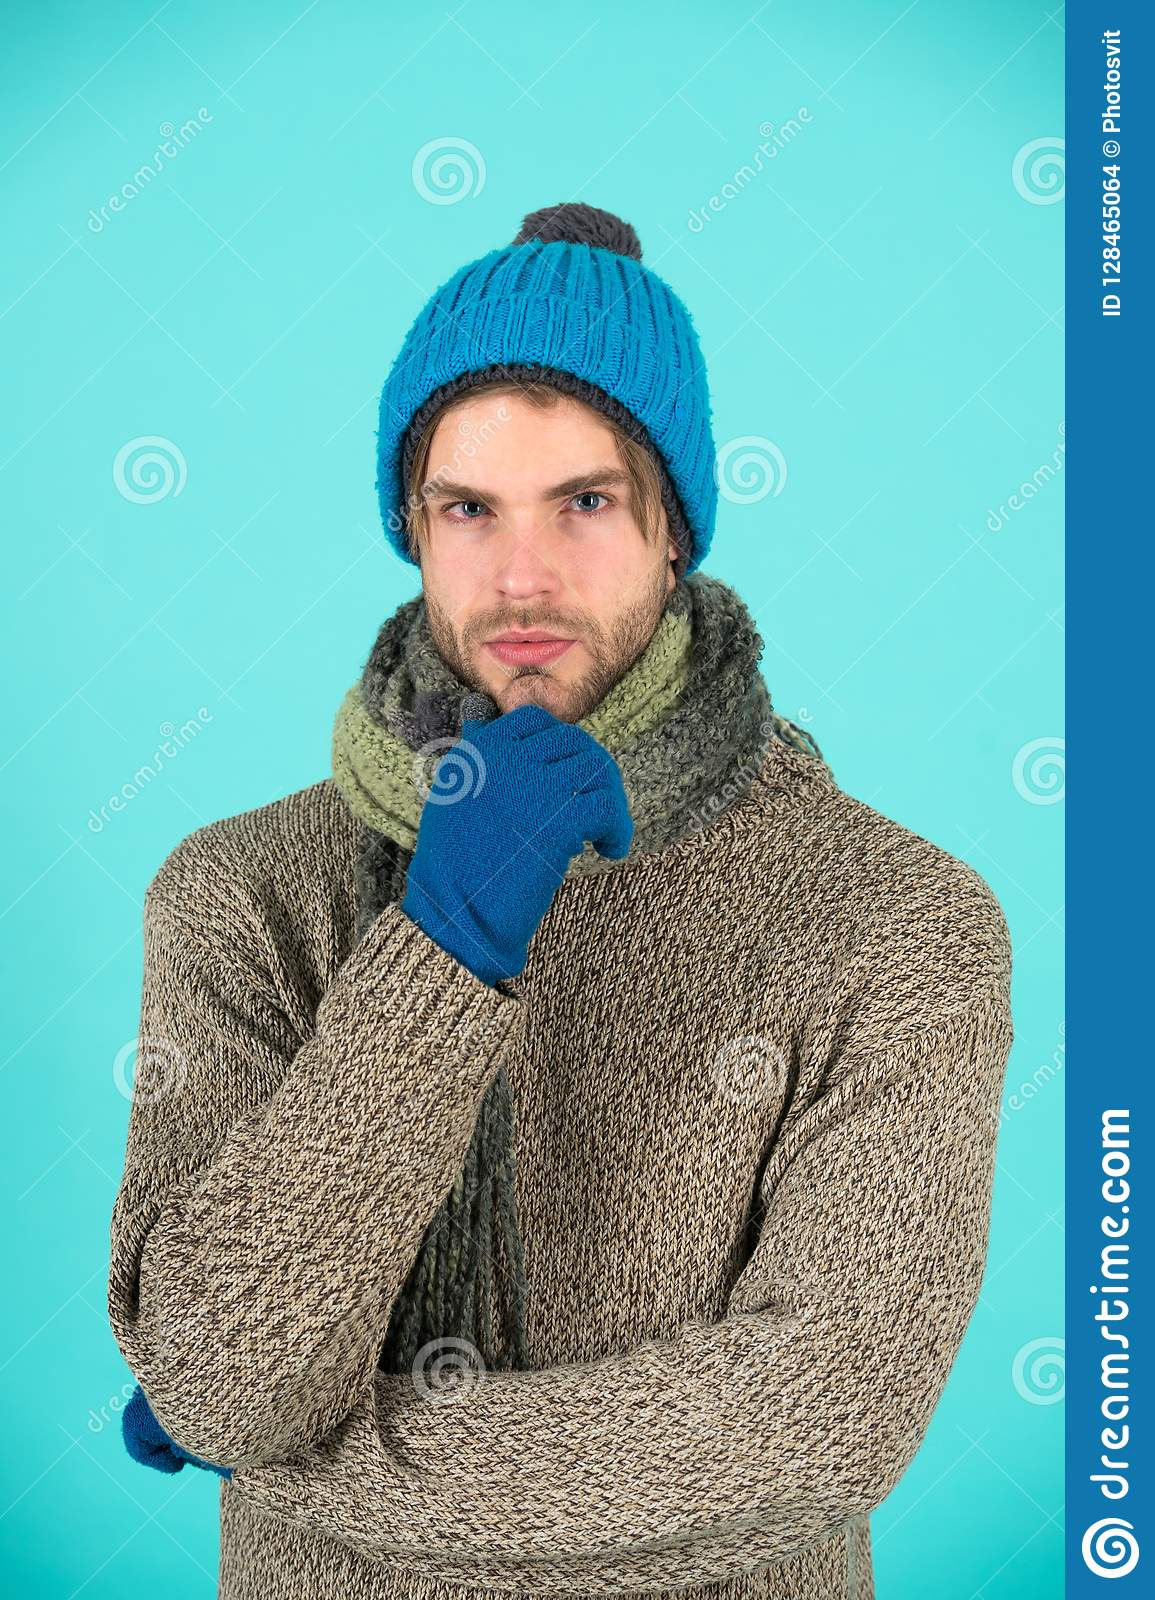 Buy How to knit a wear scarf men pictures trends